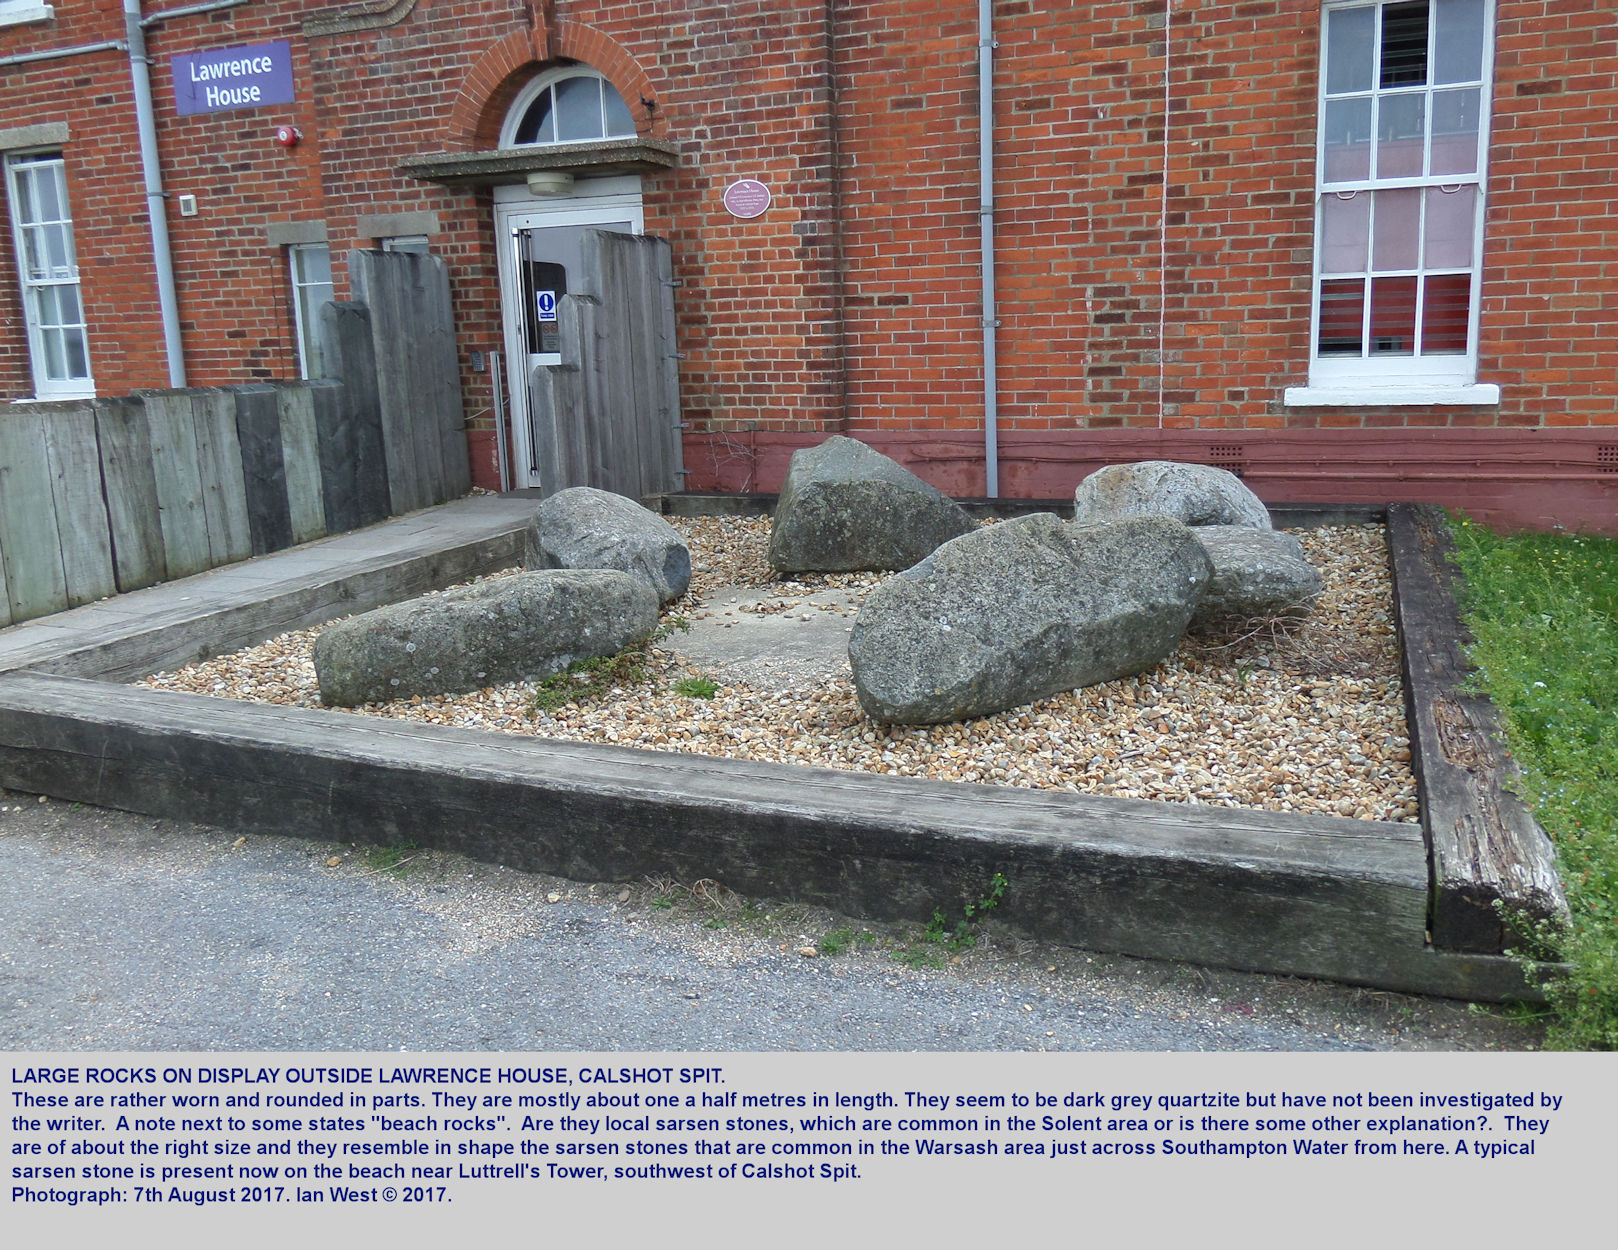 Rocks on display at Lawrence House, Calshot Spit, that might be sarsen stones from the nearby coast or, perhaps, old gravel pits